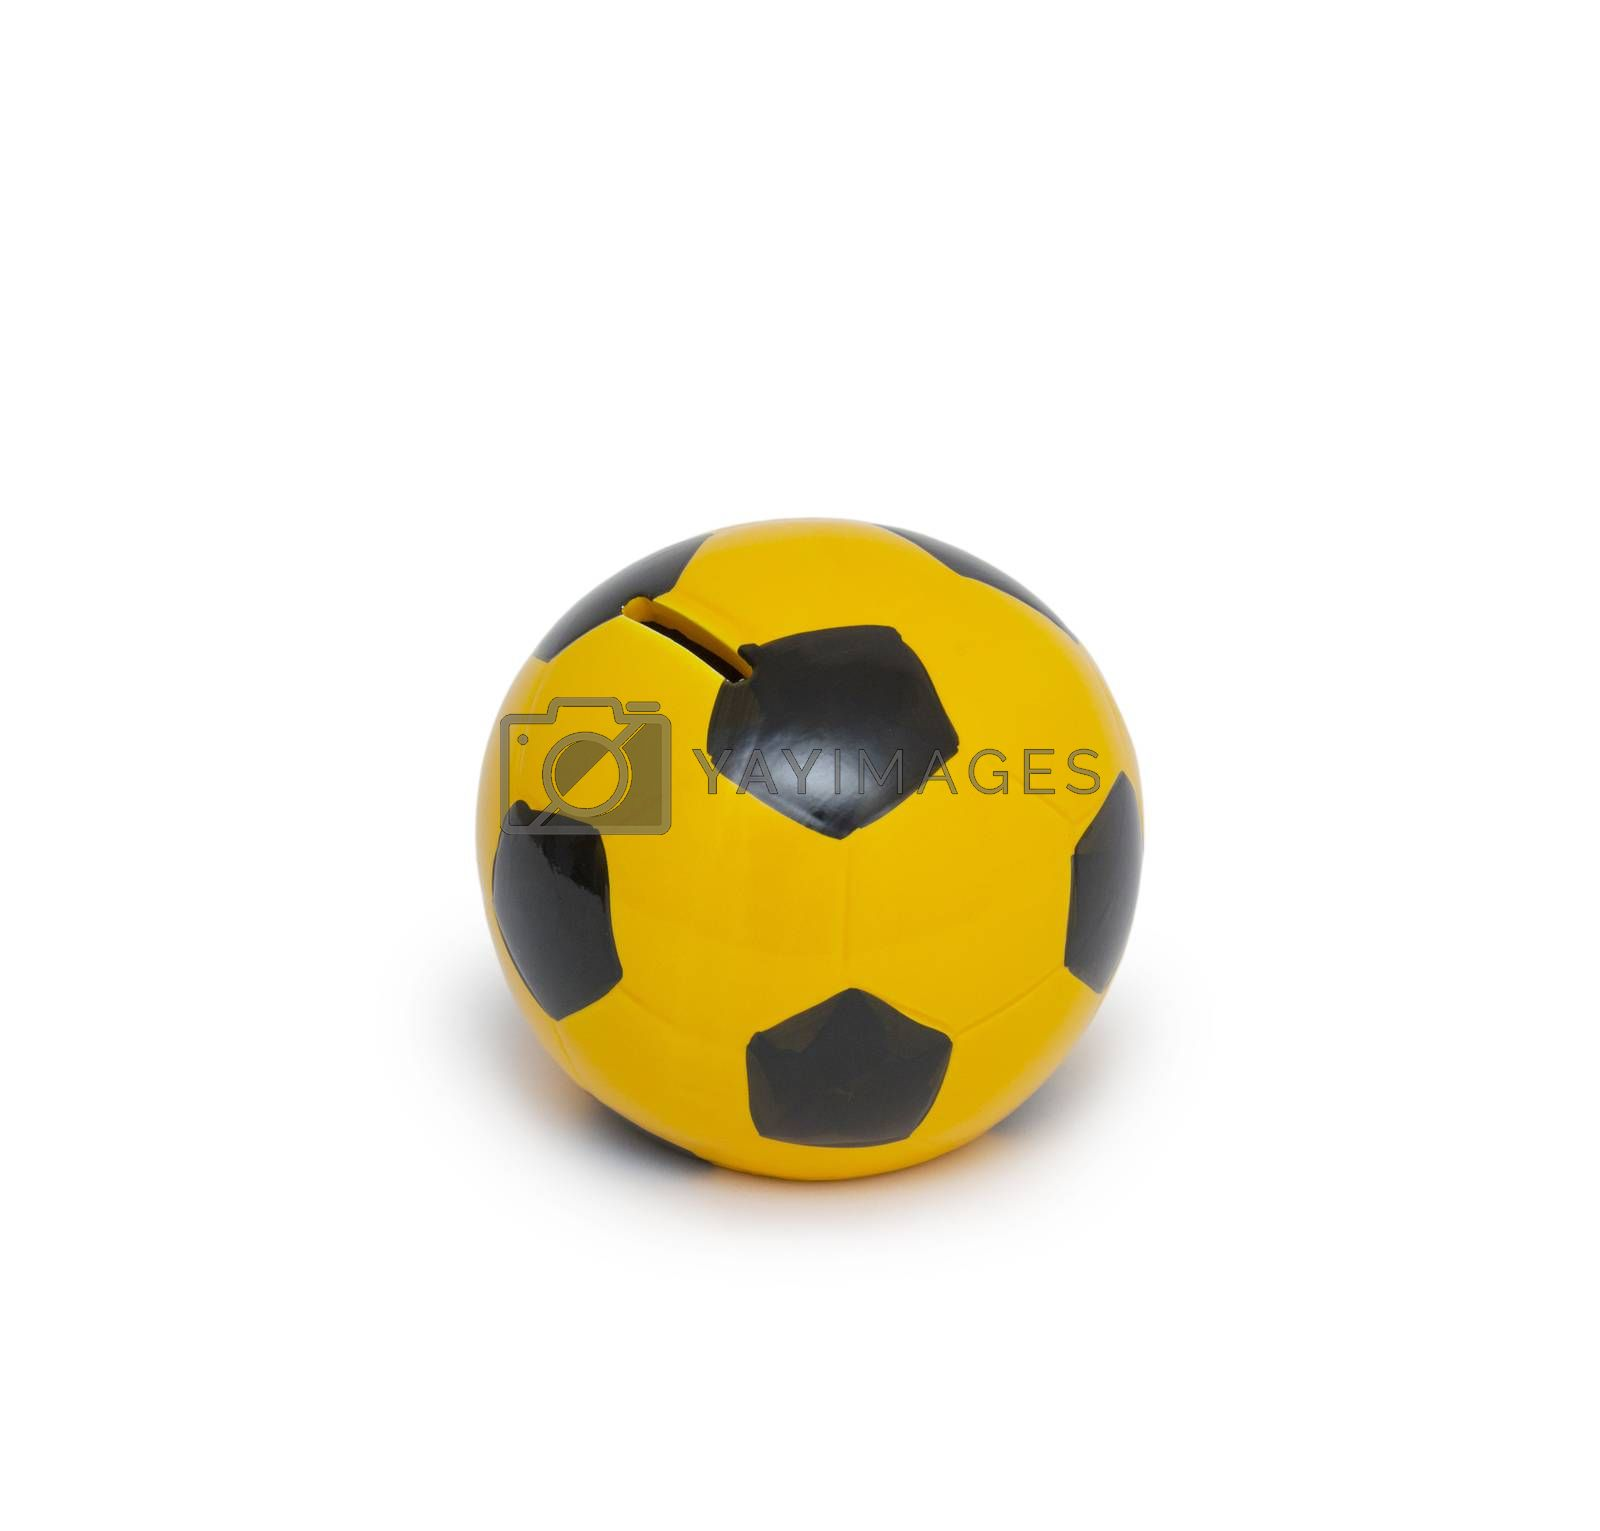 moneybox in the form of the ball by cocoo